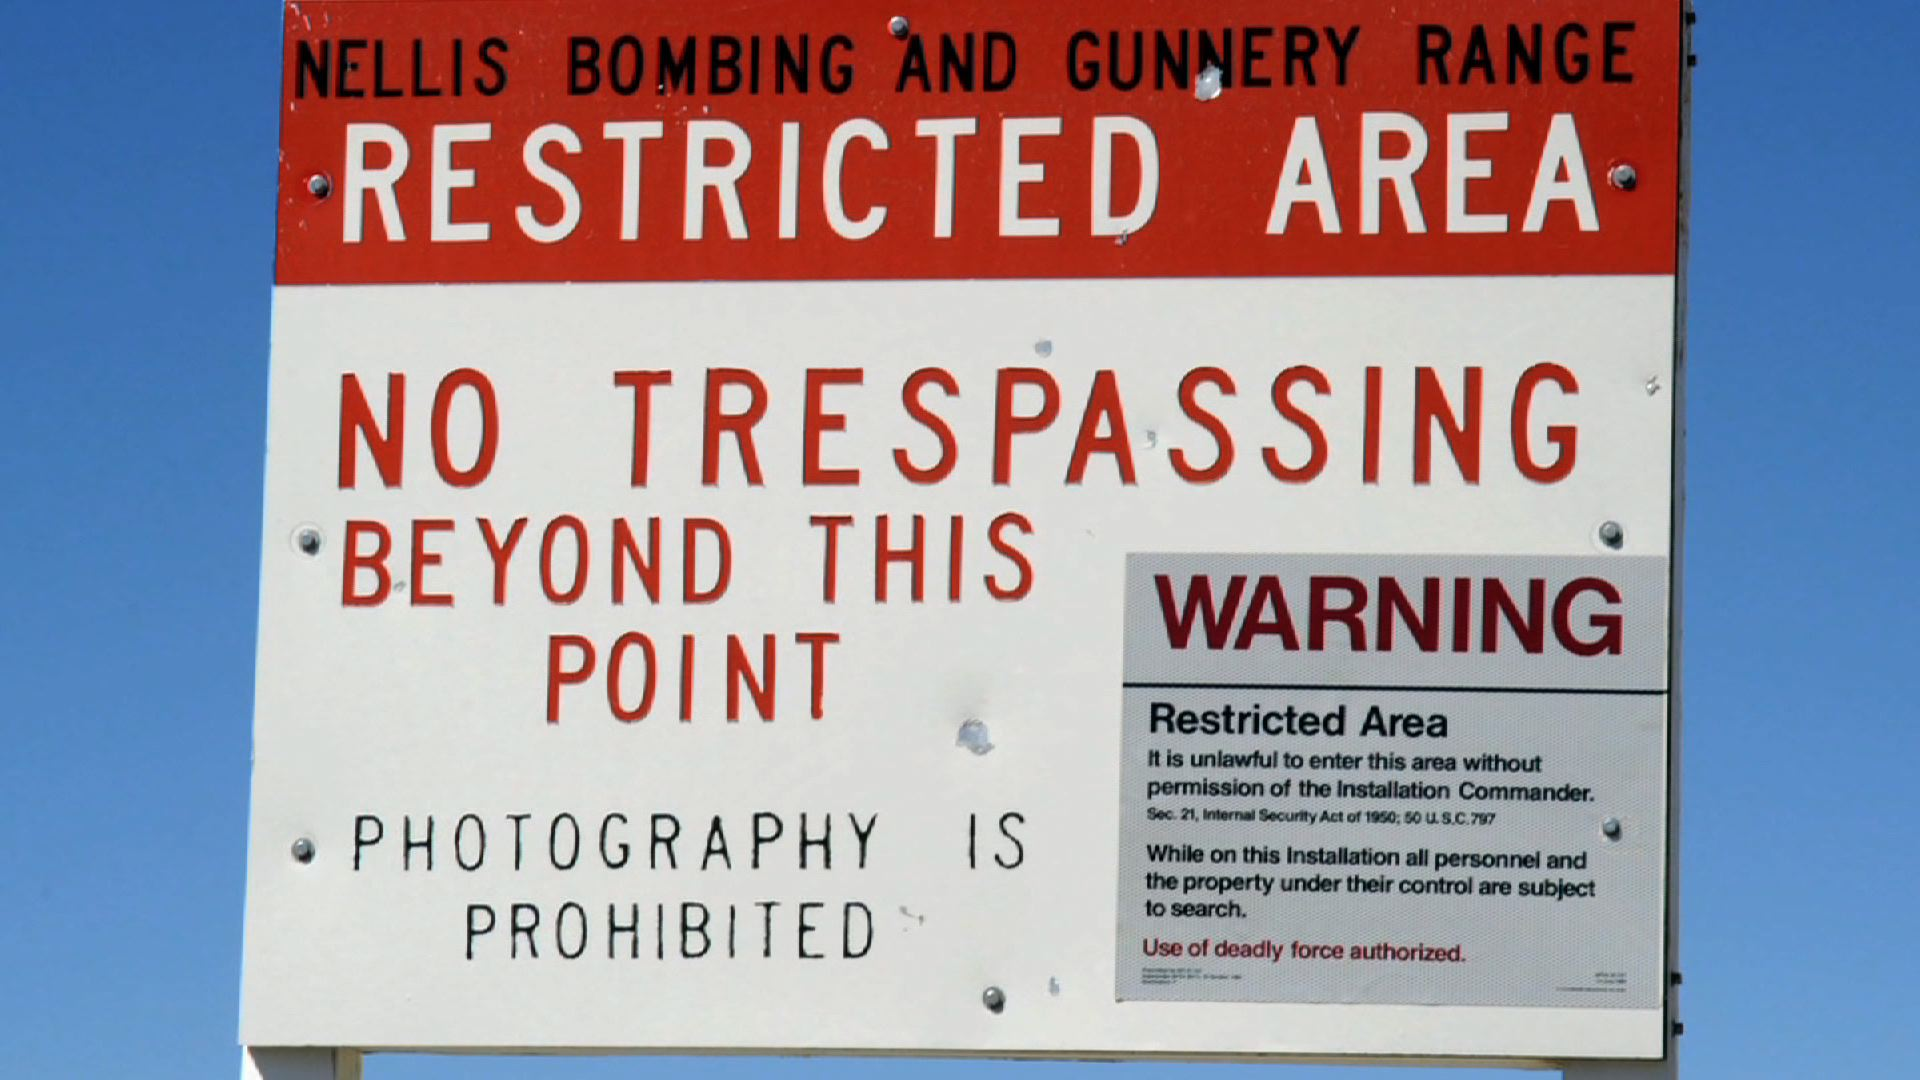 Area 51: A travel guide for the person who signed up for the